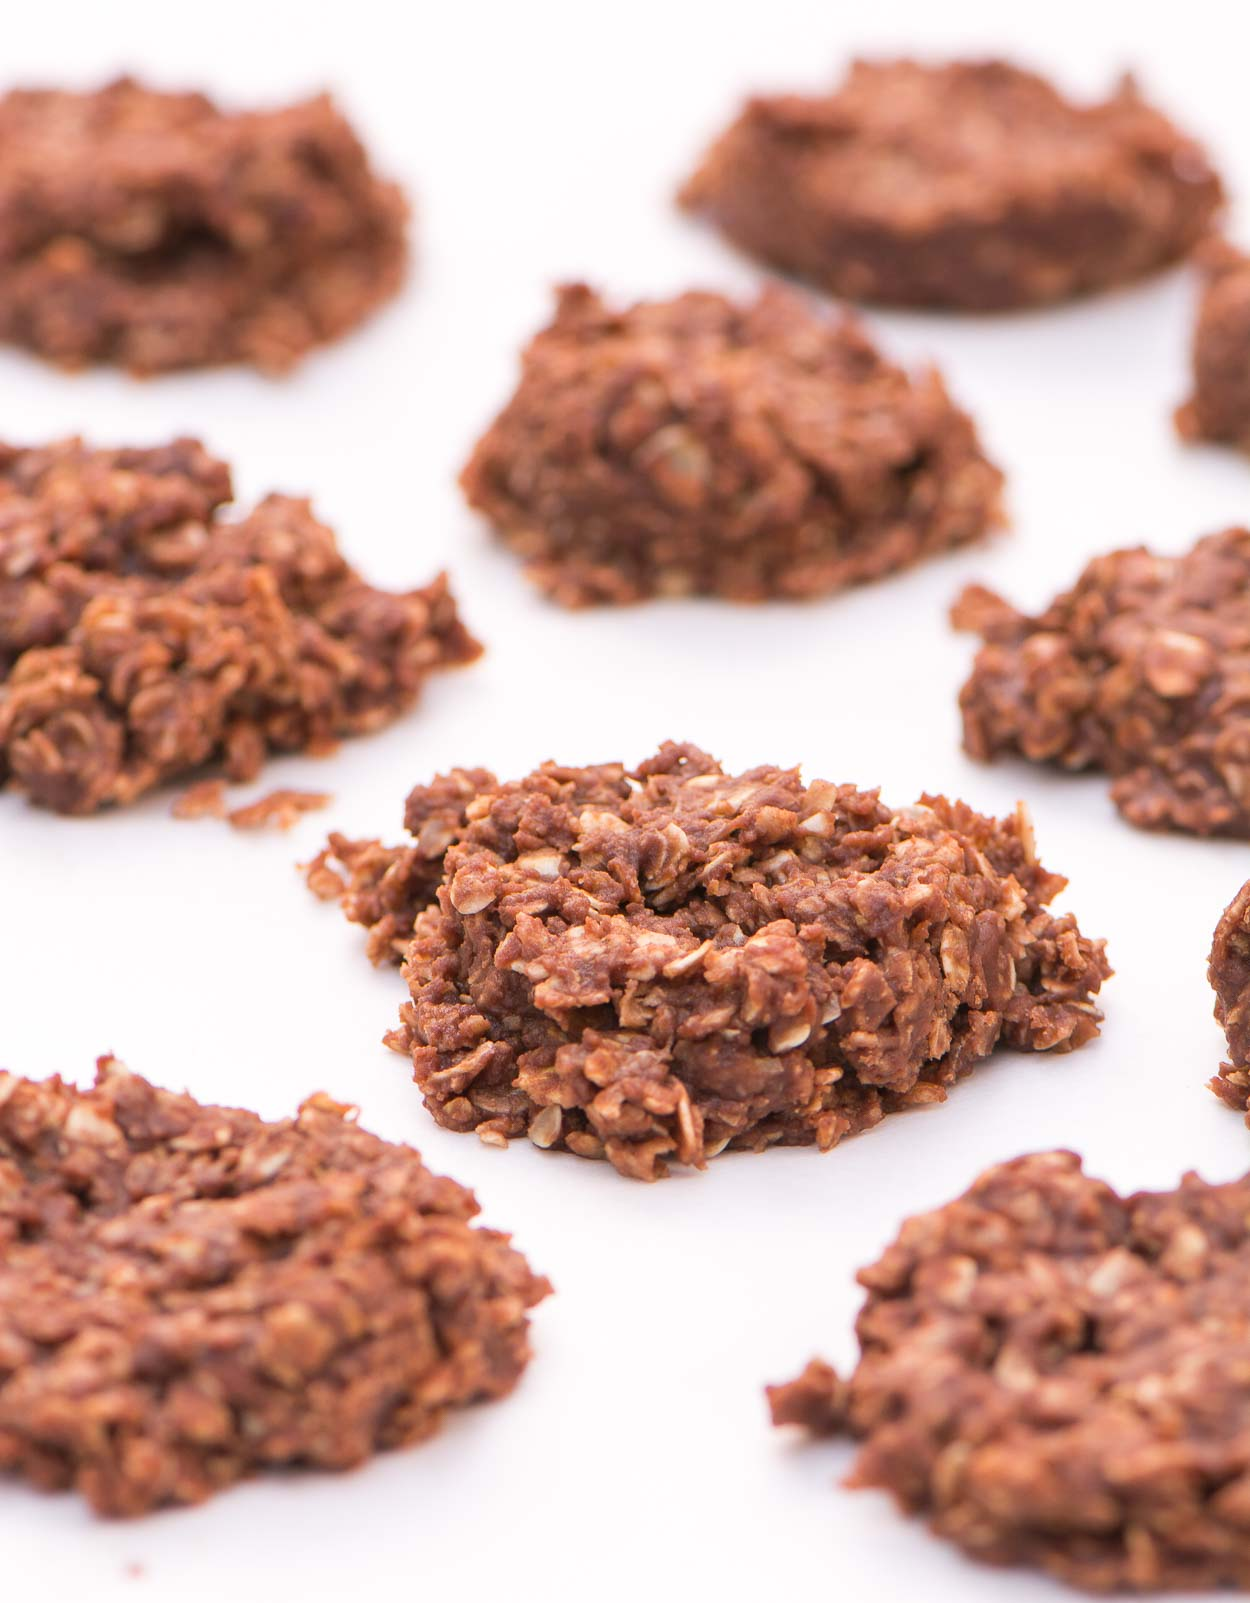 No-Bake Chocolate Oat Cookies - a quick and delicious, no-bake chocolate dessert with oats, cocoa, vanilla and peanut butter. You can't eat just one!